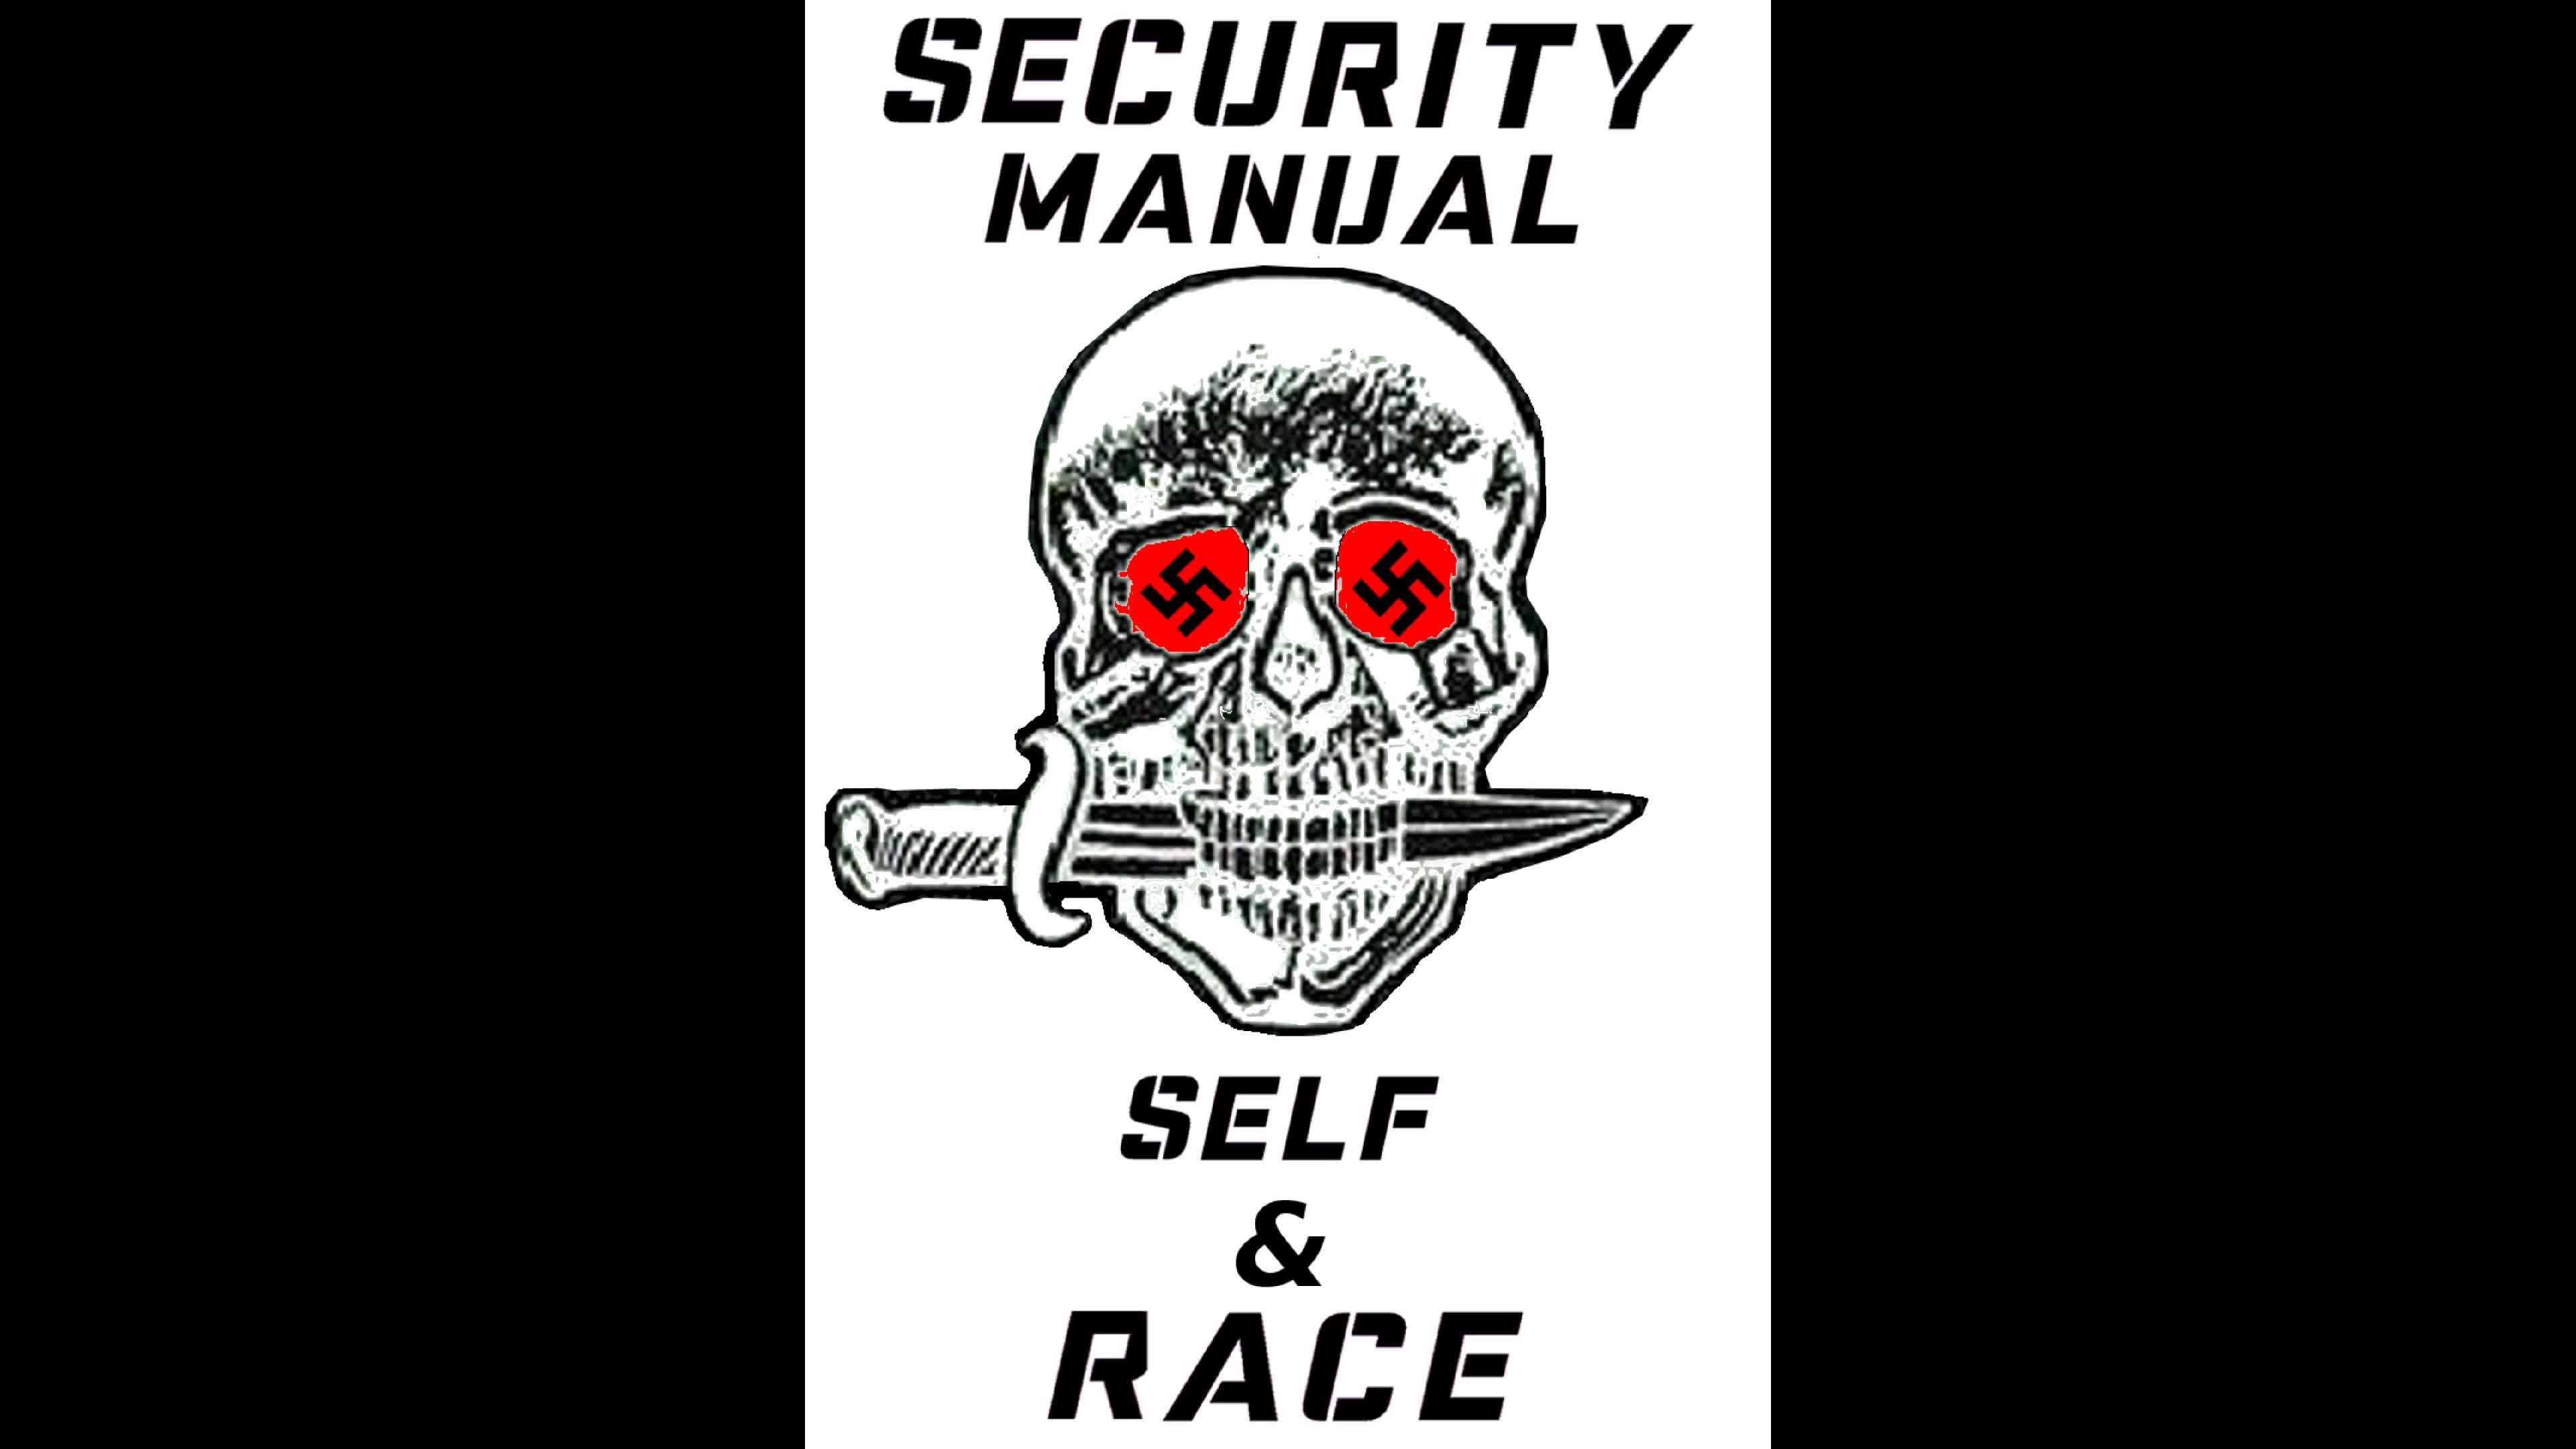 SECURITY MANUAL: SELF AND RACE